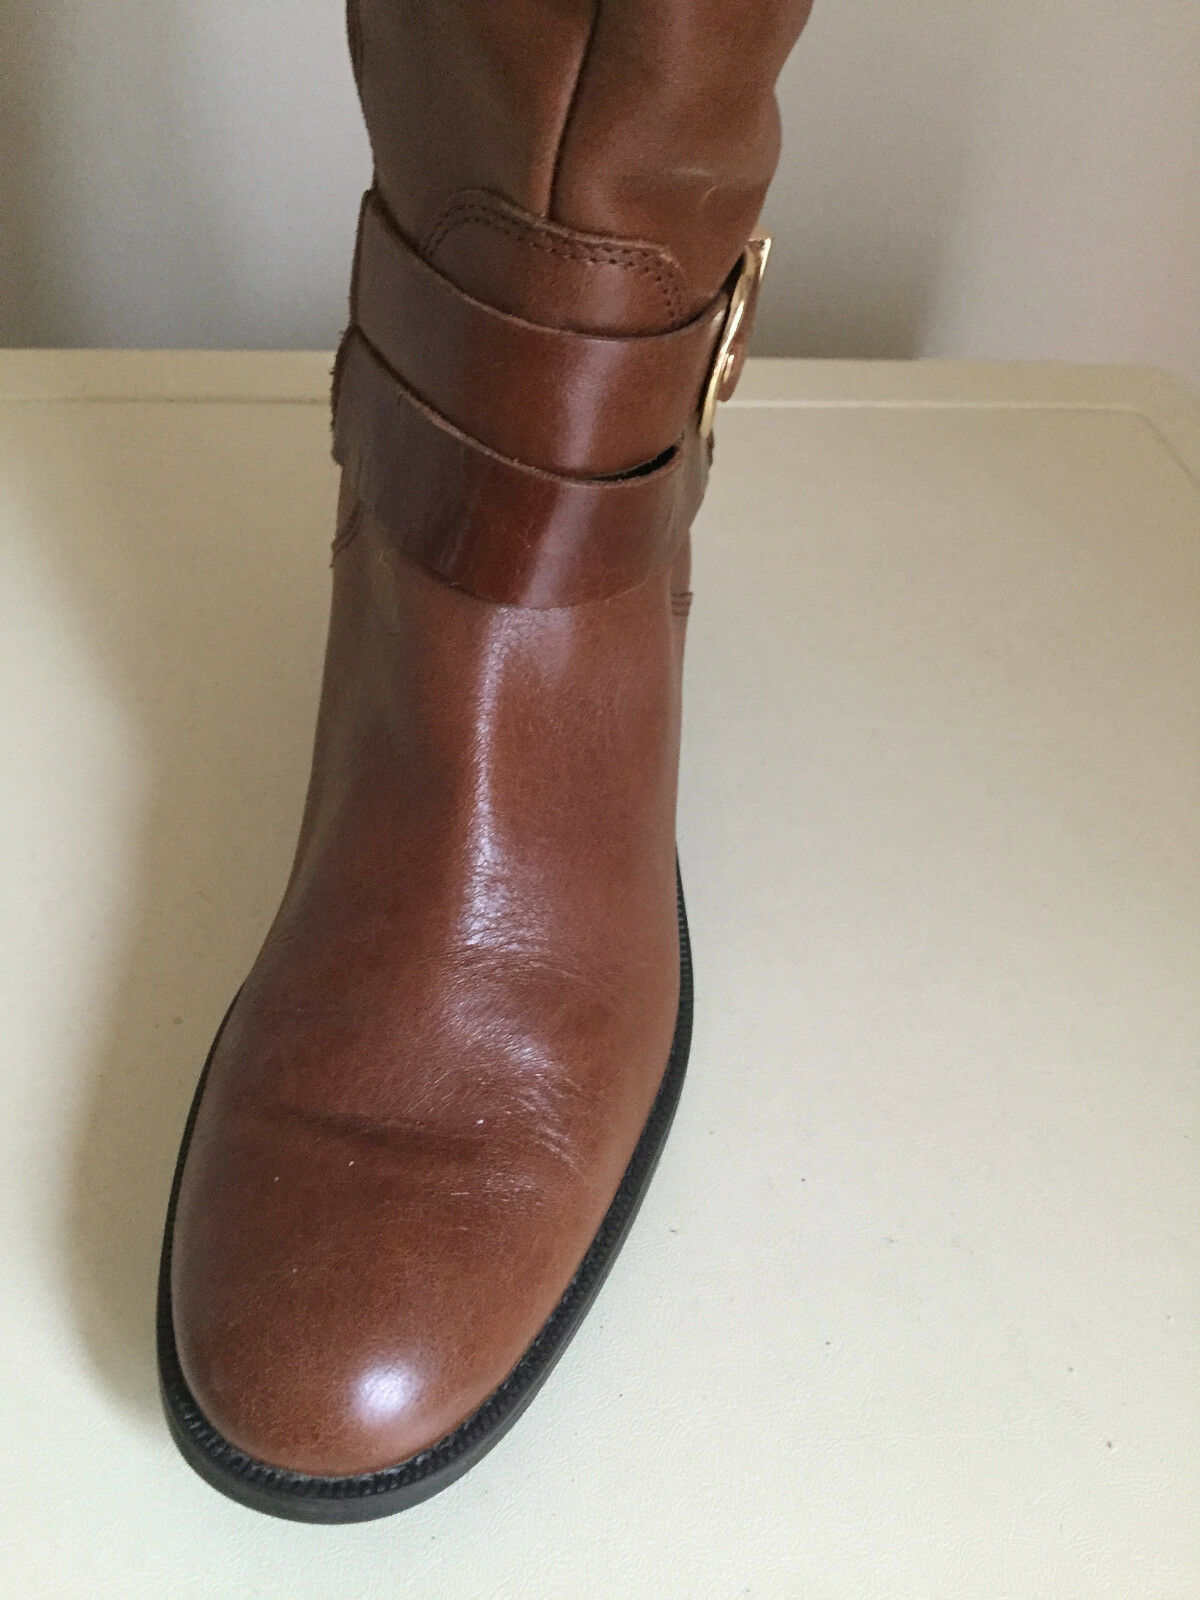 WOMEN TAN KNEE HIGH LEATHER BOOTS 5TH AVENUE  SIZE 5